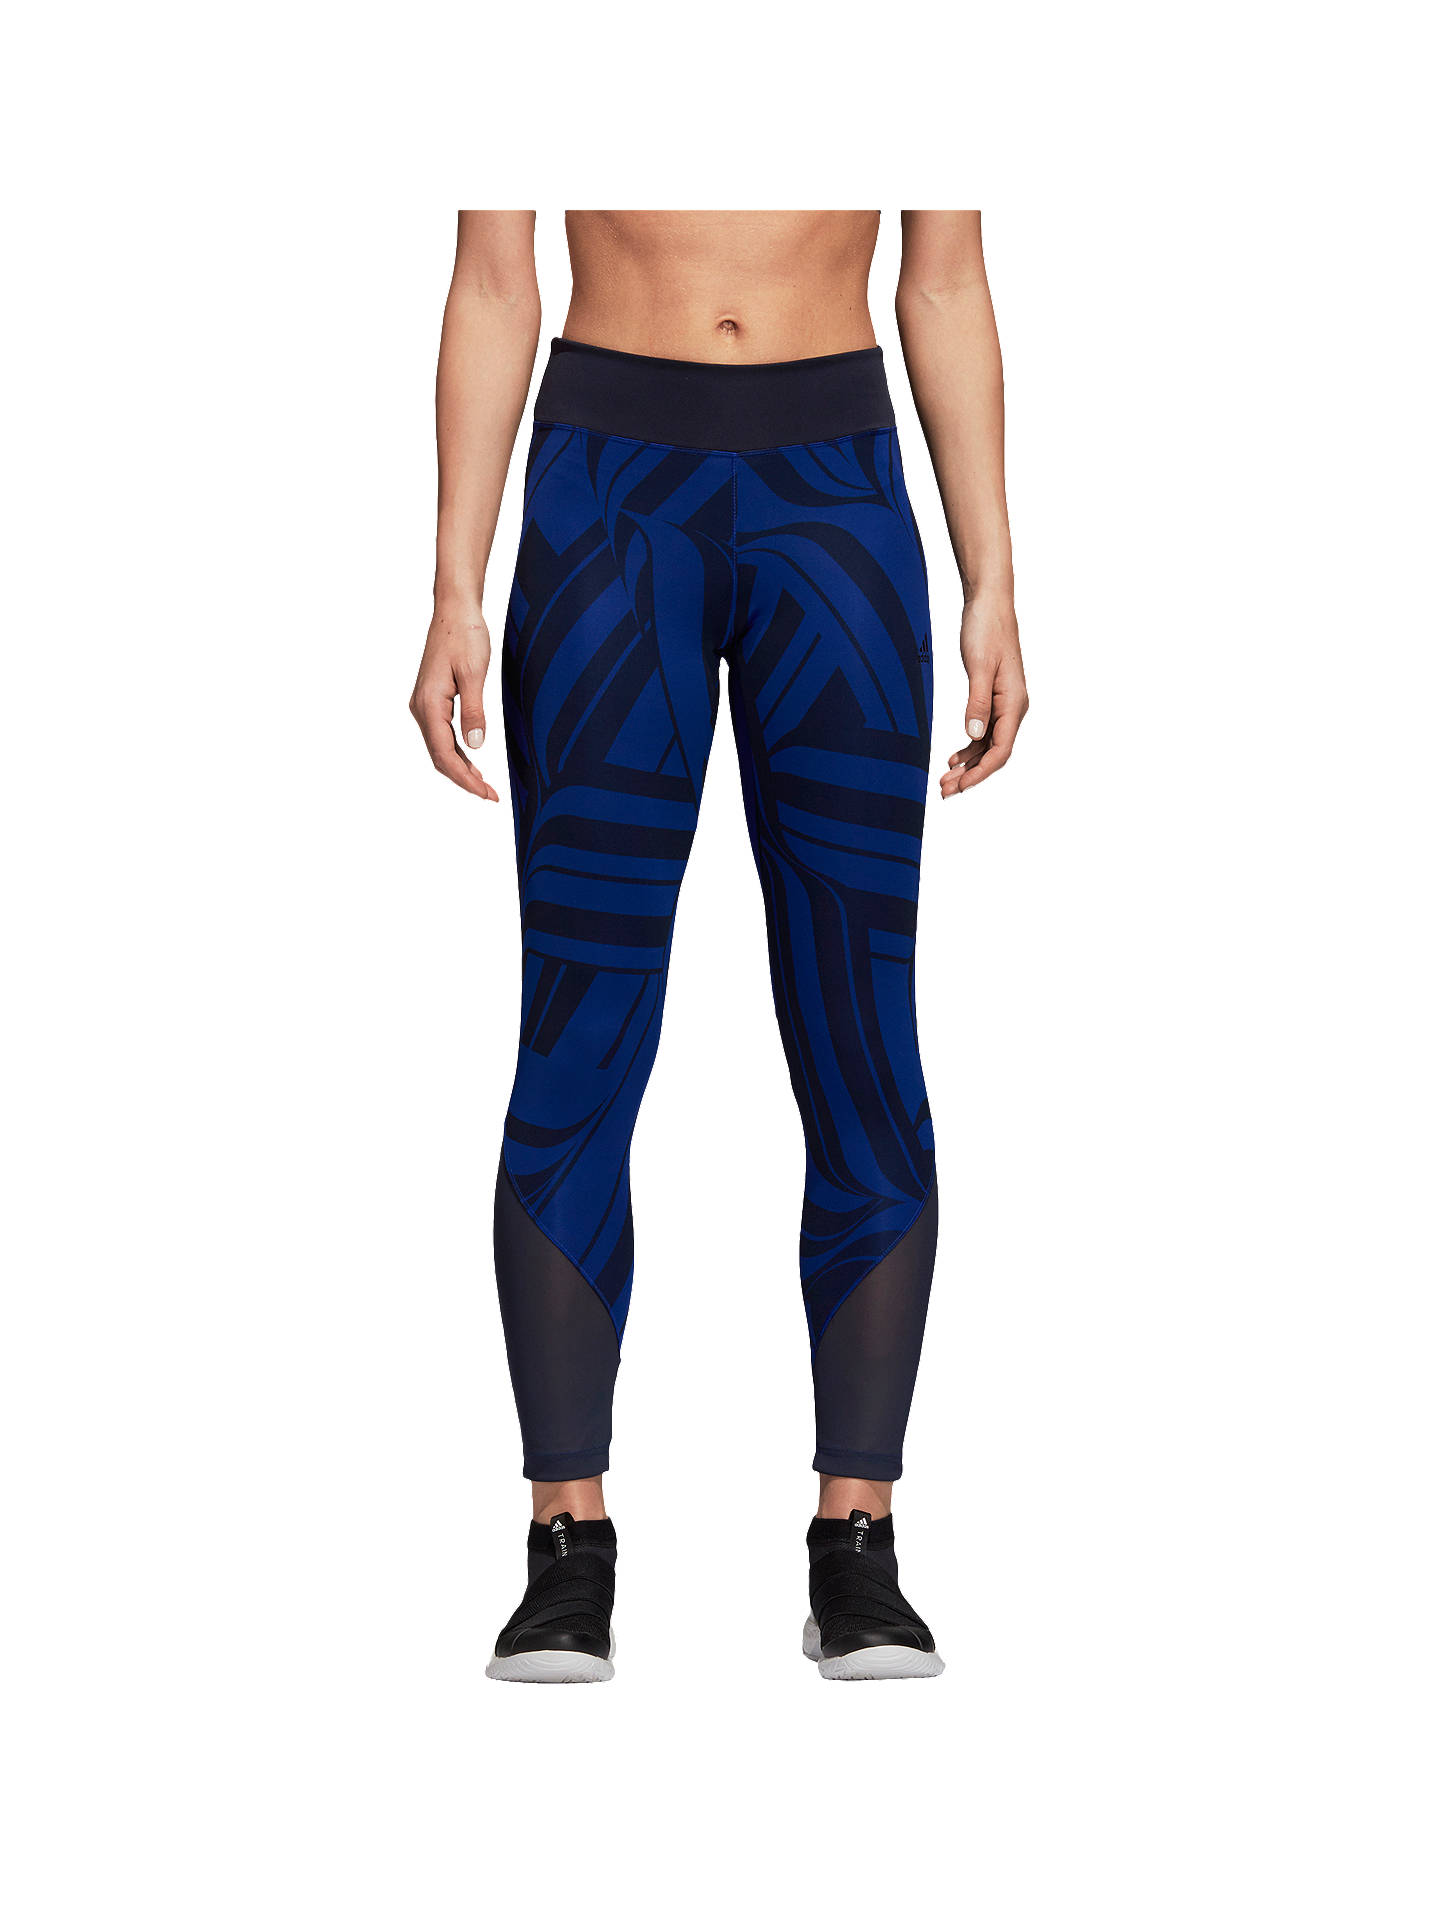 Buyadidas D2M Training Tights, Black/Blue, XS Online at johnlewis.com